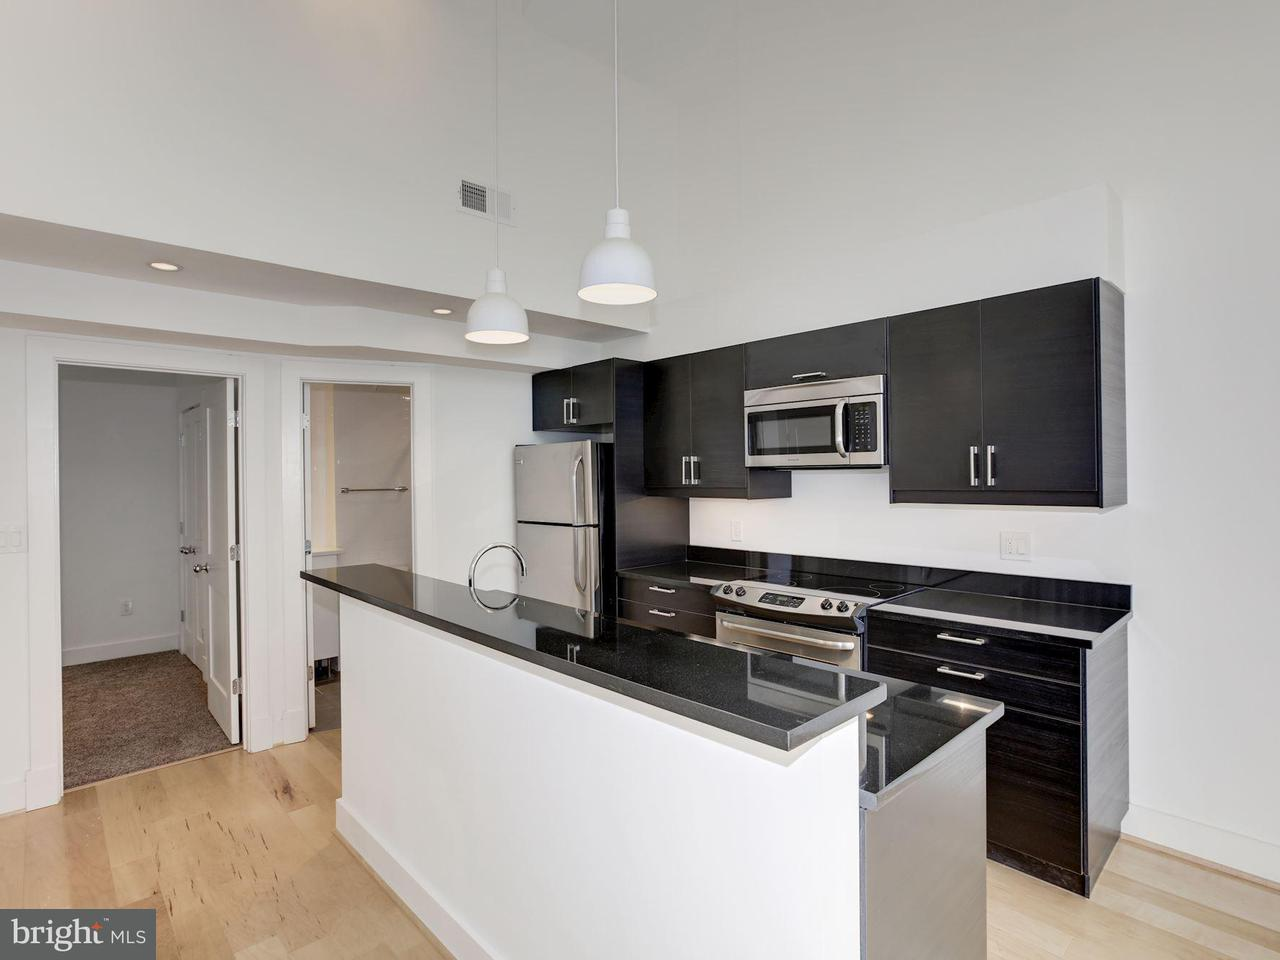 Additional photo for property listing at 215 Upshur St NW #1  Washington, District Of Columbia 20011 United States